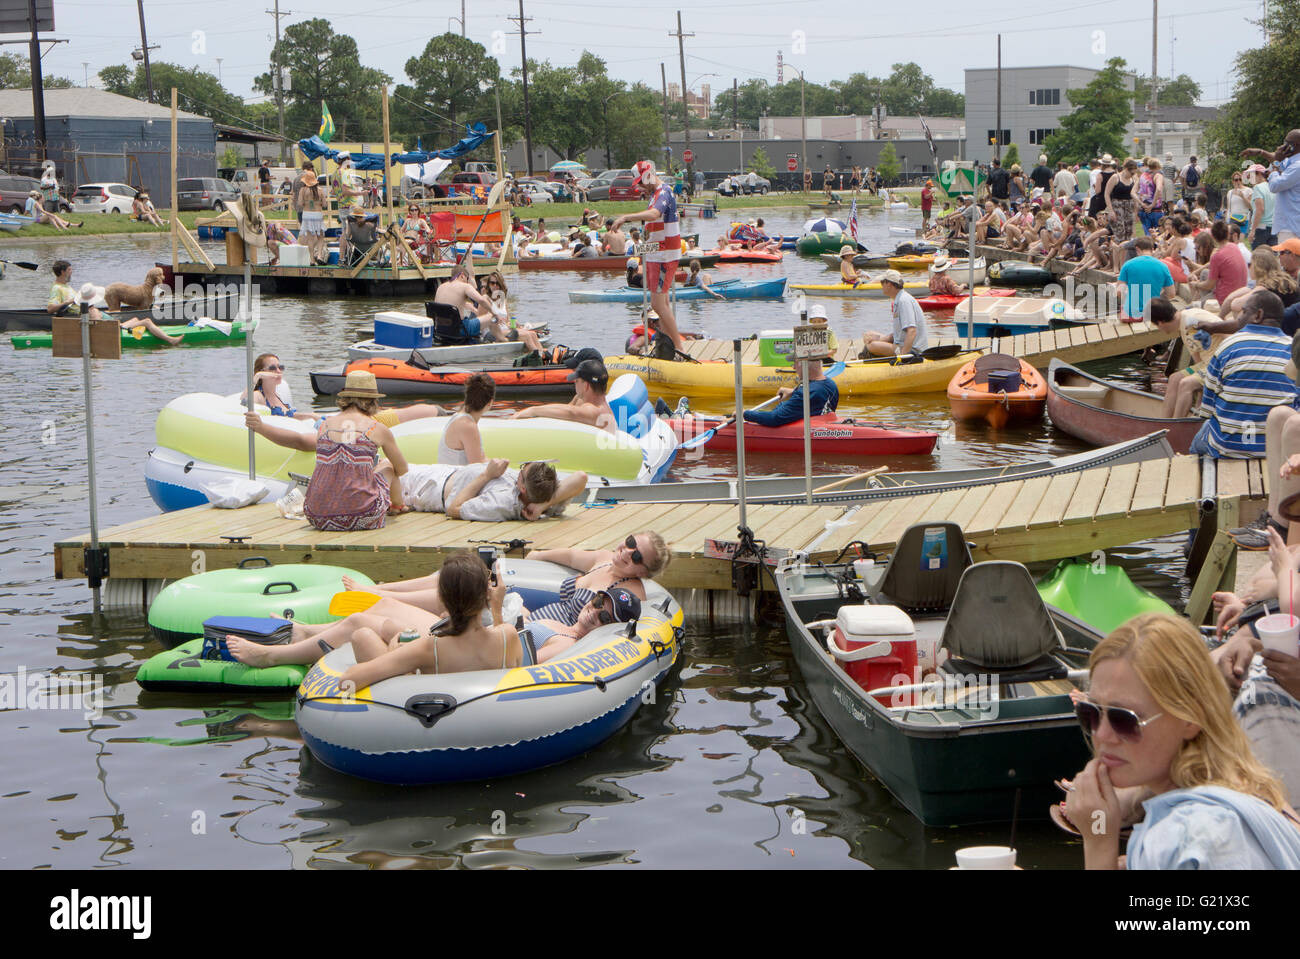 Hundreds of people along the banks of Bayou St John during the Bayou Boogaloo festival. - Stock Image